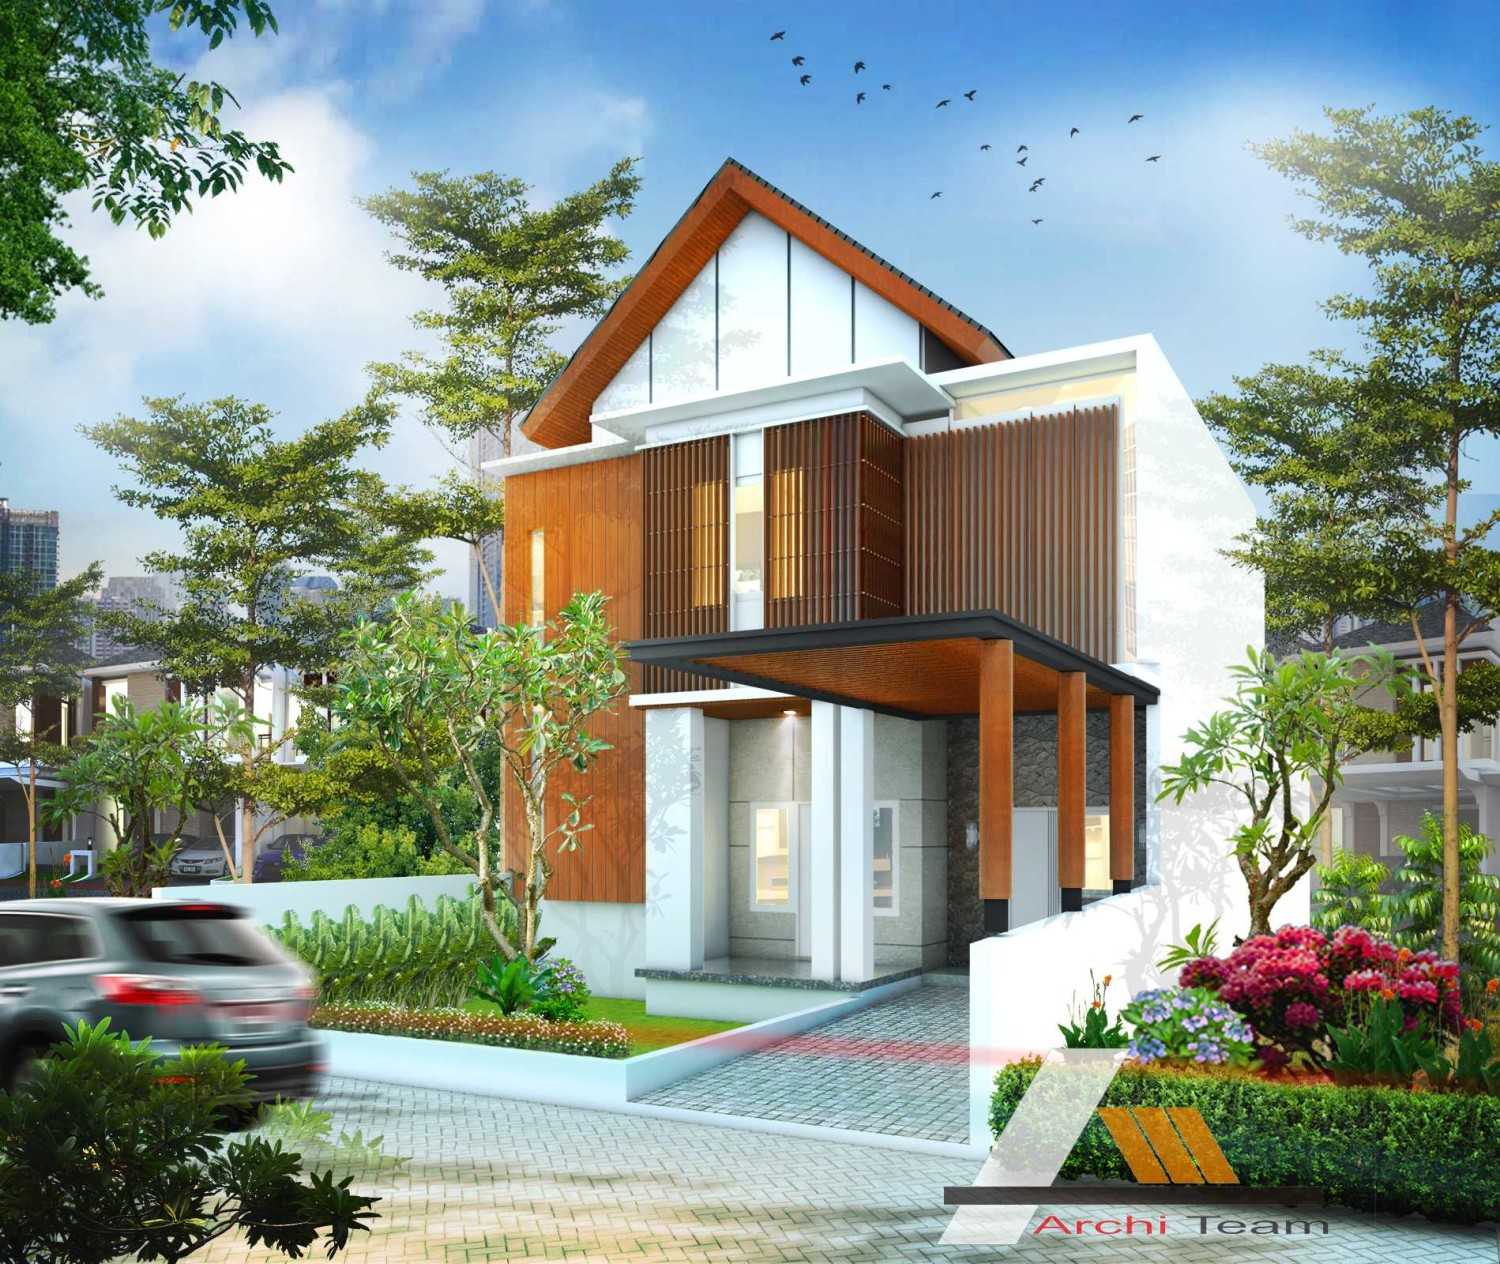 Dwy Ariyanto Contemporary I House Renovation Tambun, Tambun Sel., Bekasi, Jawa Barat, Indonesia  Contemporary I House Renovation - Facade Contemporary 43441